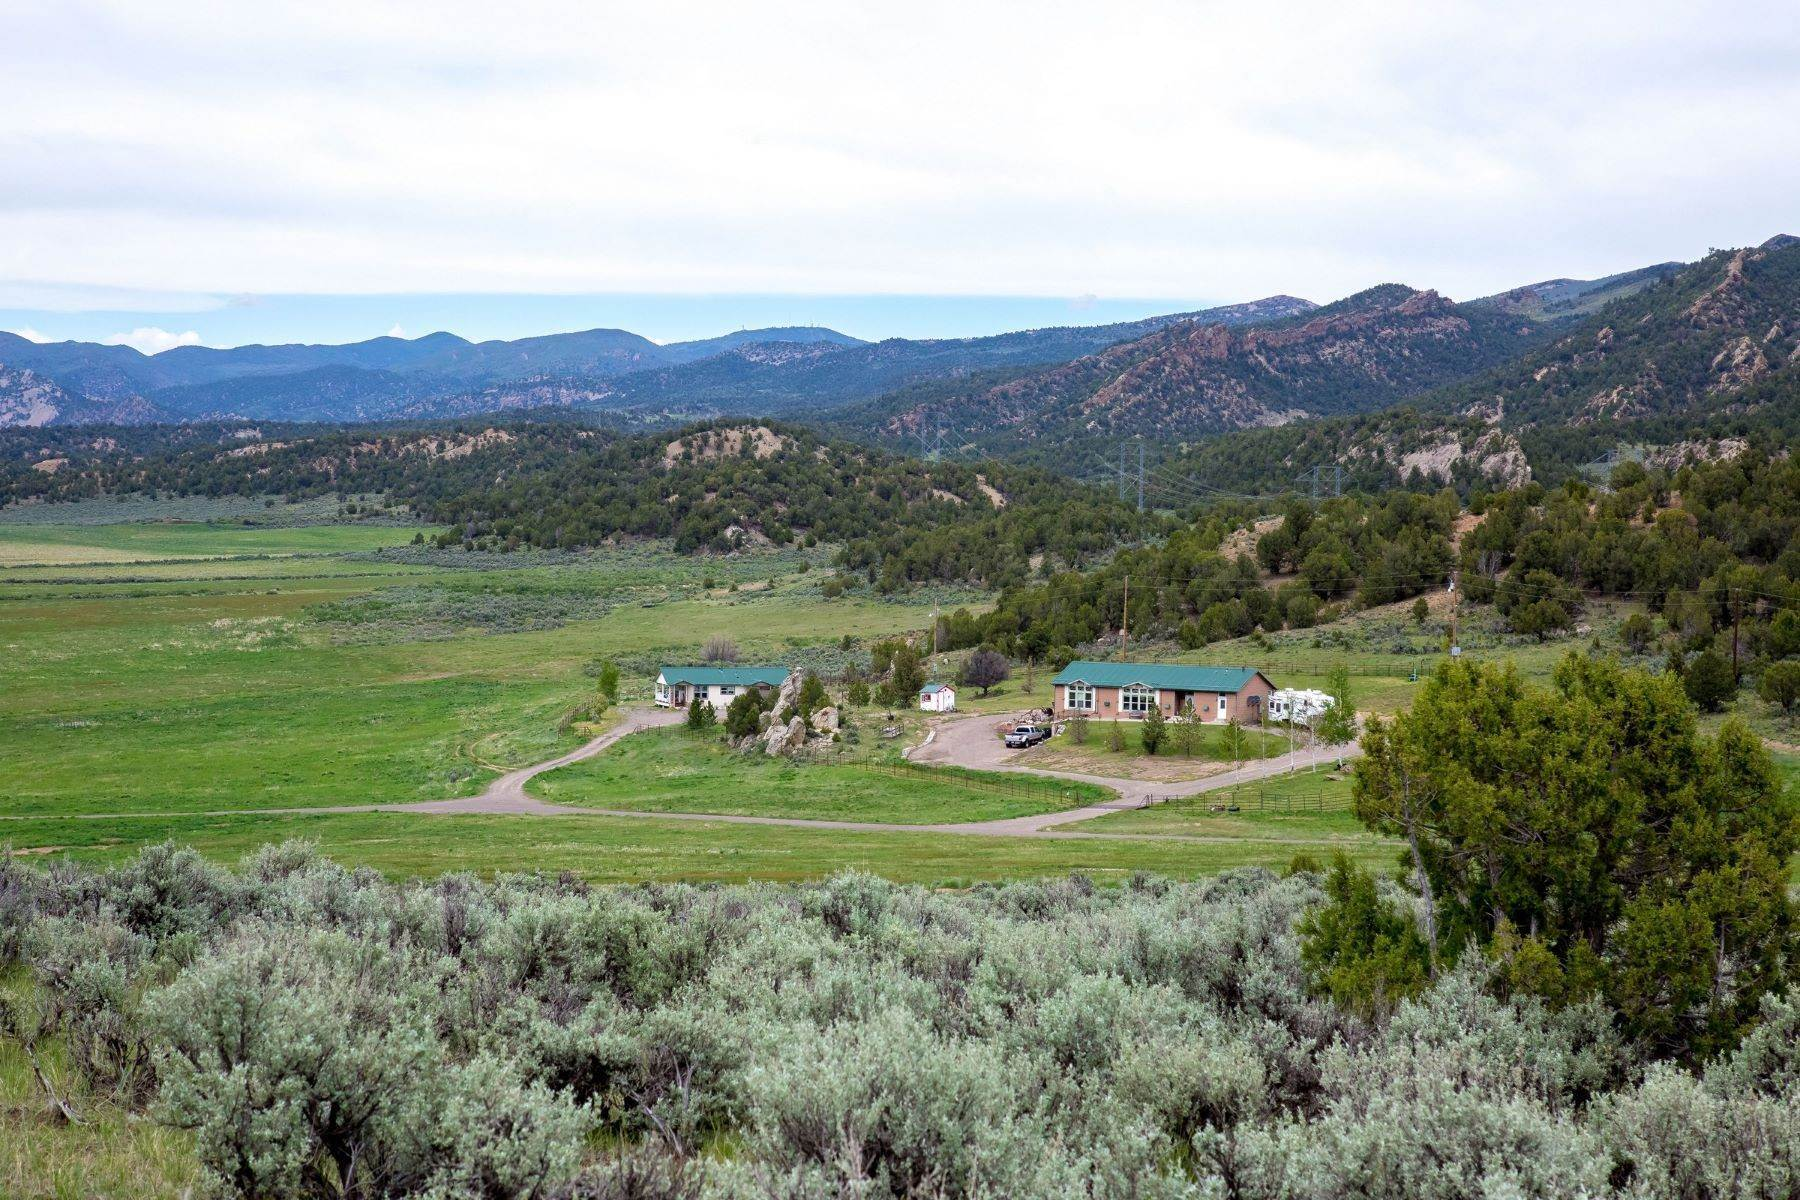 Farm and Ranch Properties 为 销售 在 Ranch West of Meeker 2204 County Road 7 米克, 科罗拉多州 81641 美国